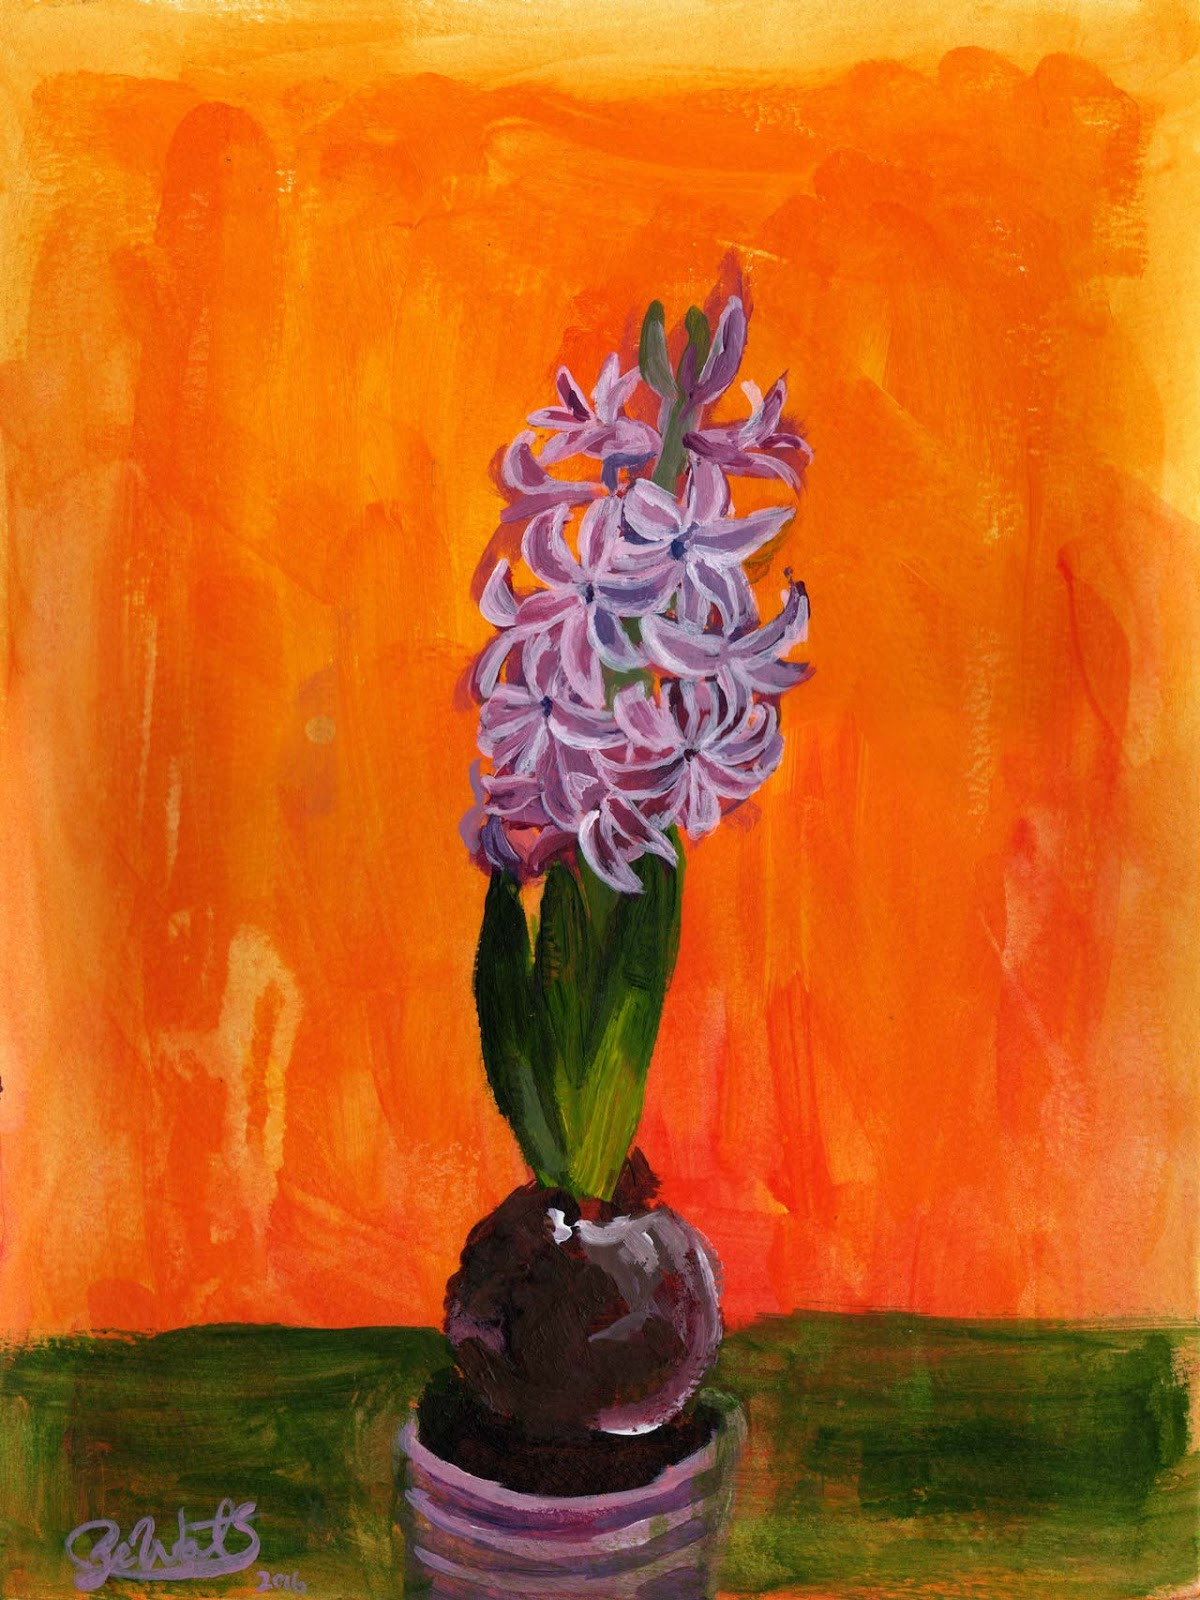 Sze Wat - Painting Study #1 of Hyacinth